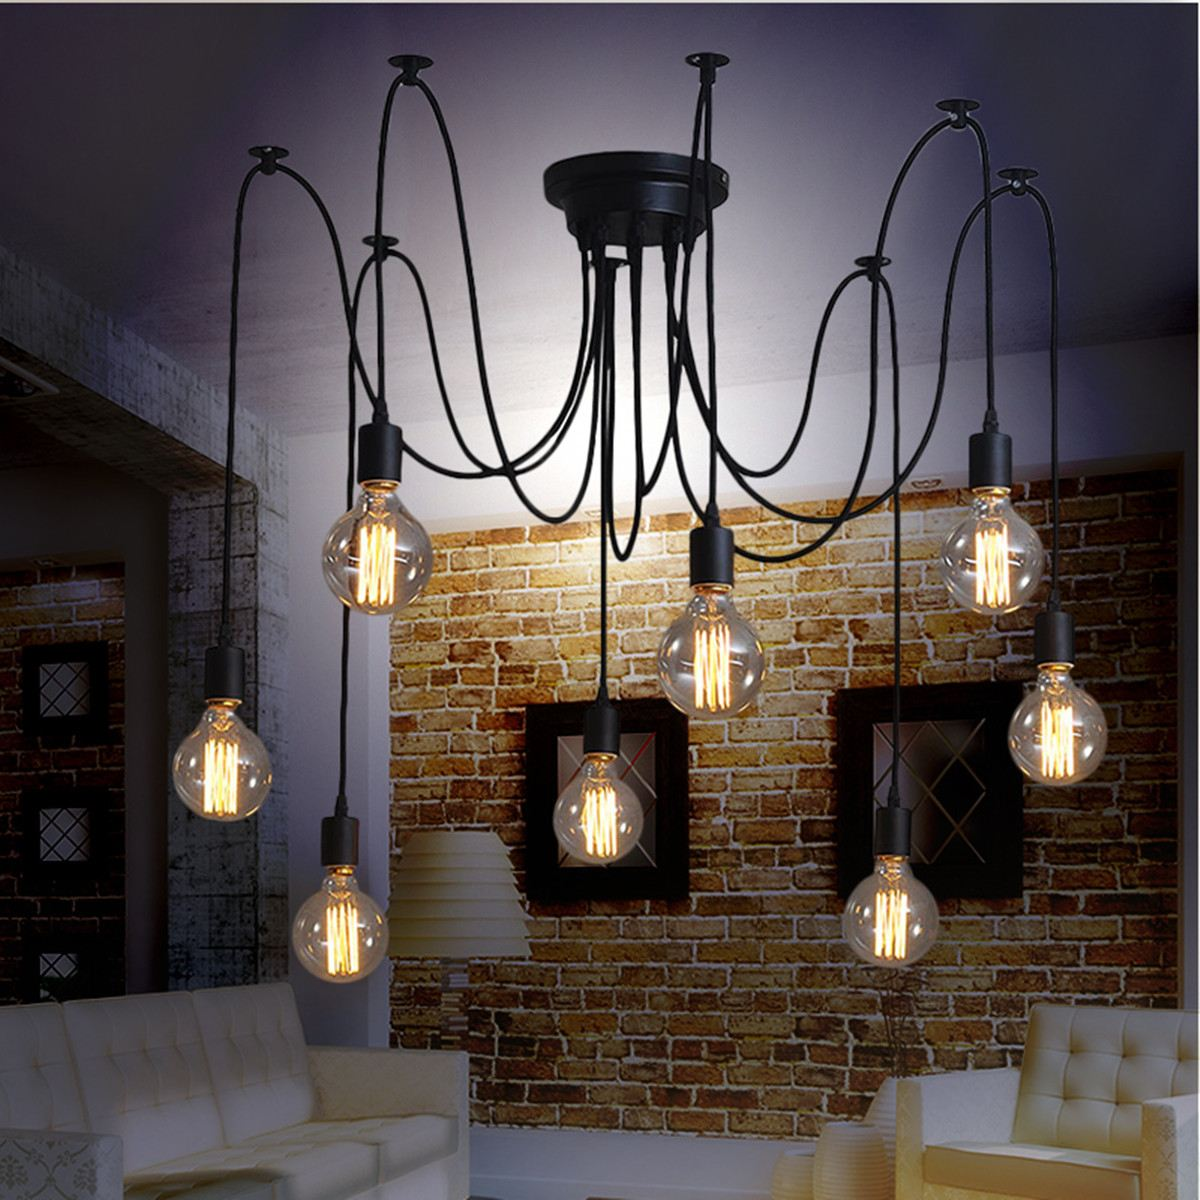 Modern Retro DIY 8 Pendant Lights Hanging E27 Edison Bulb Spider Night Lamp Fixture Living Room Home Decor Novelty Lighting diy vintage lamps antique art spider pendant lights modern retro e27 edison bulb 2 meters line home lighting suspension